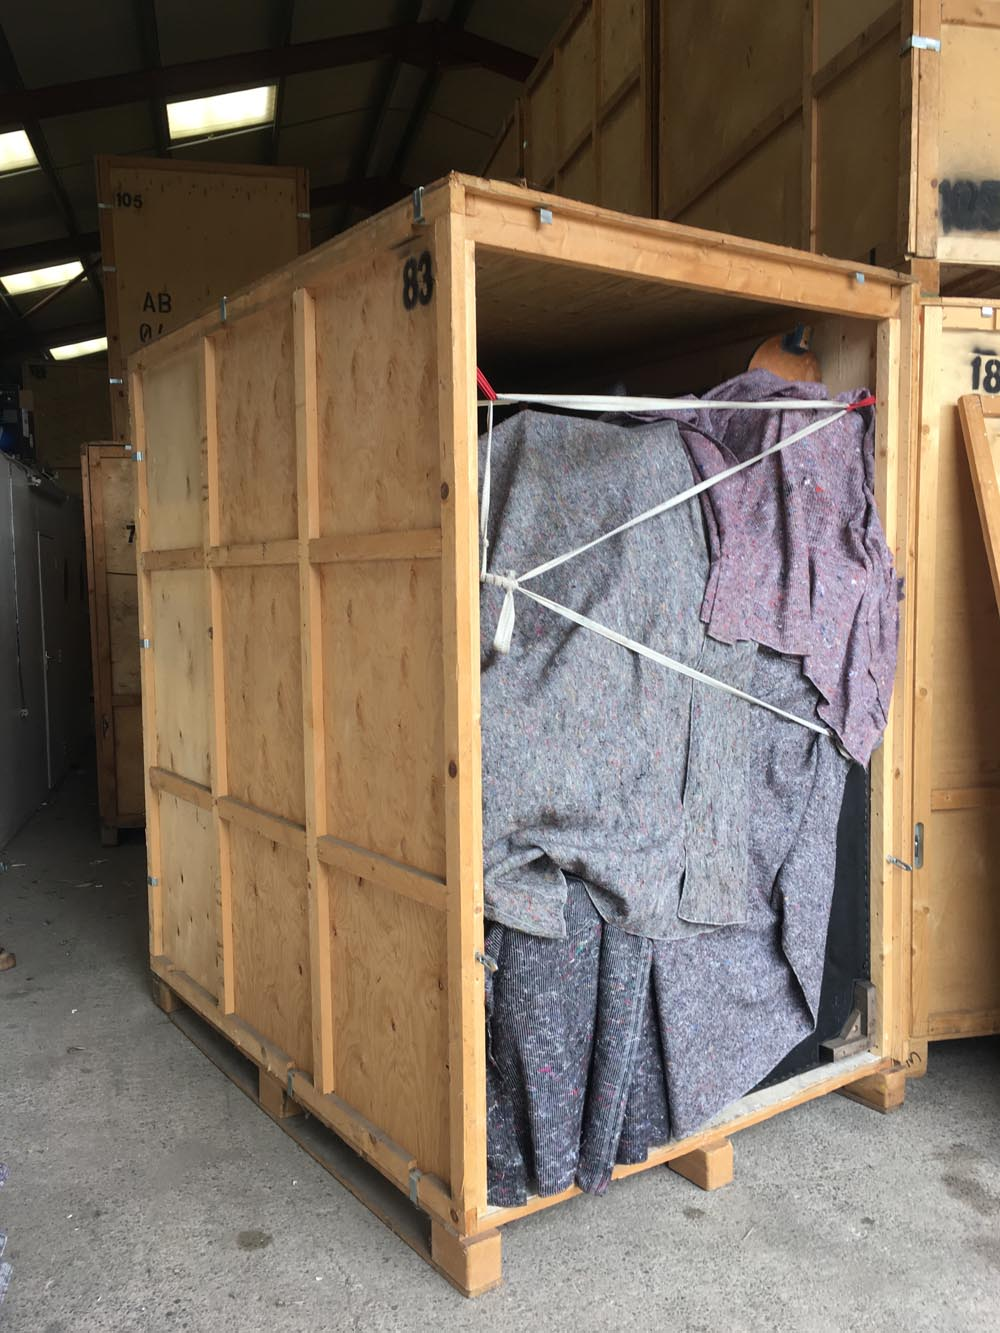 Top Tips for Preparing Your Possessions for Storage